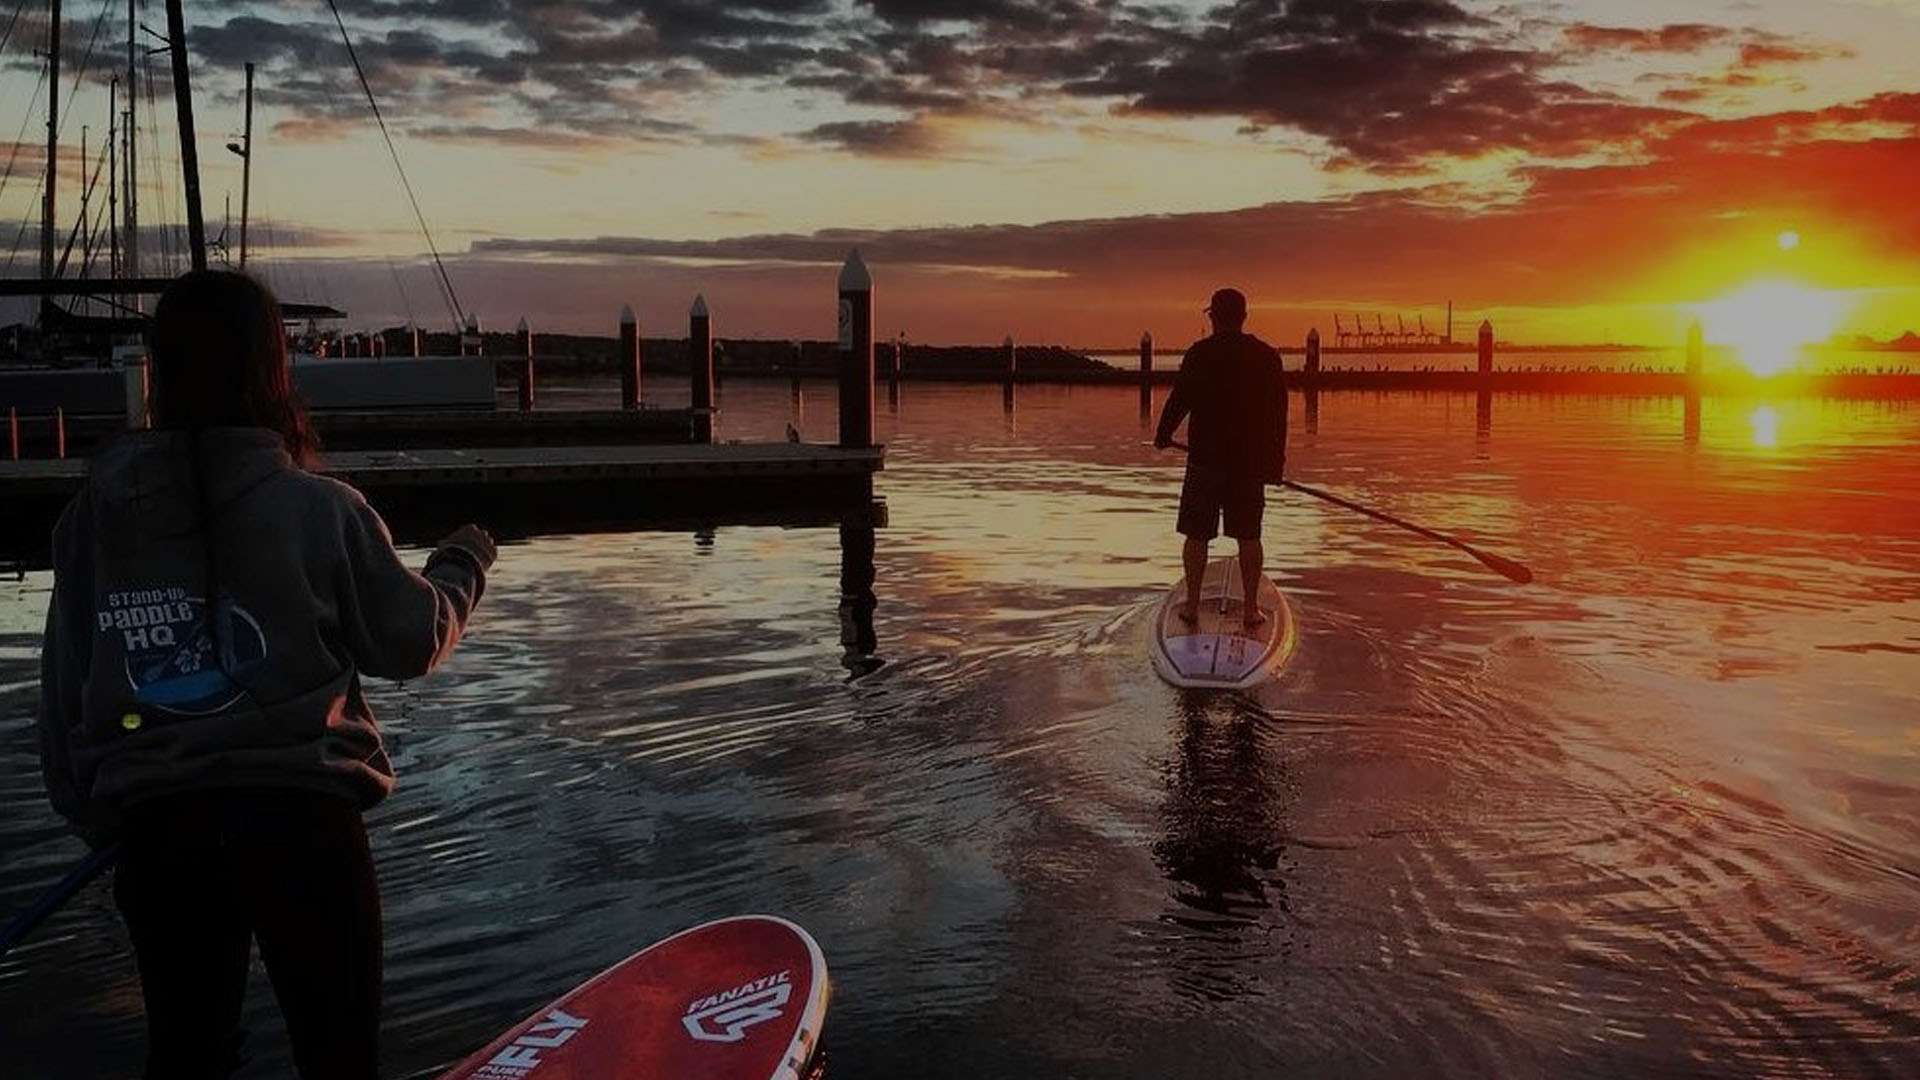 Paddle boarding session looking at the sunset